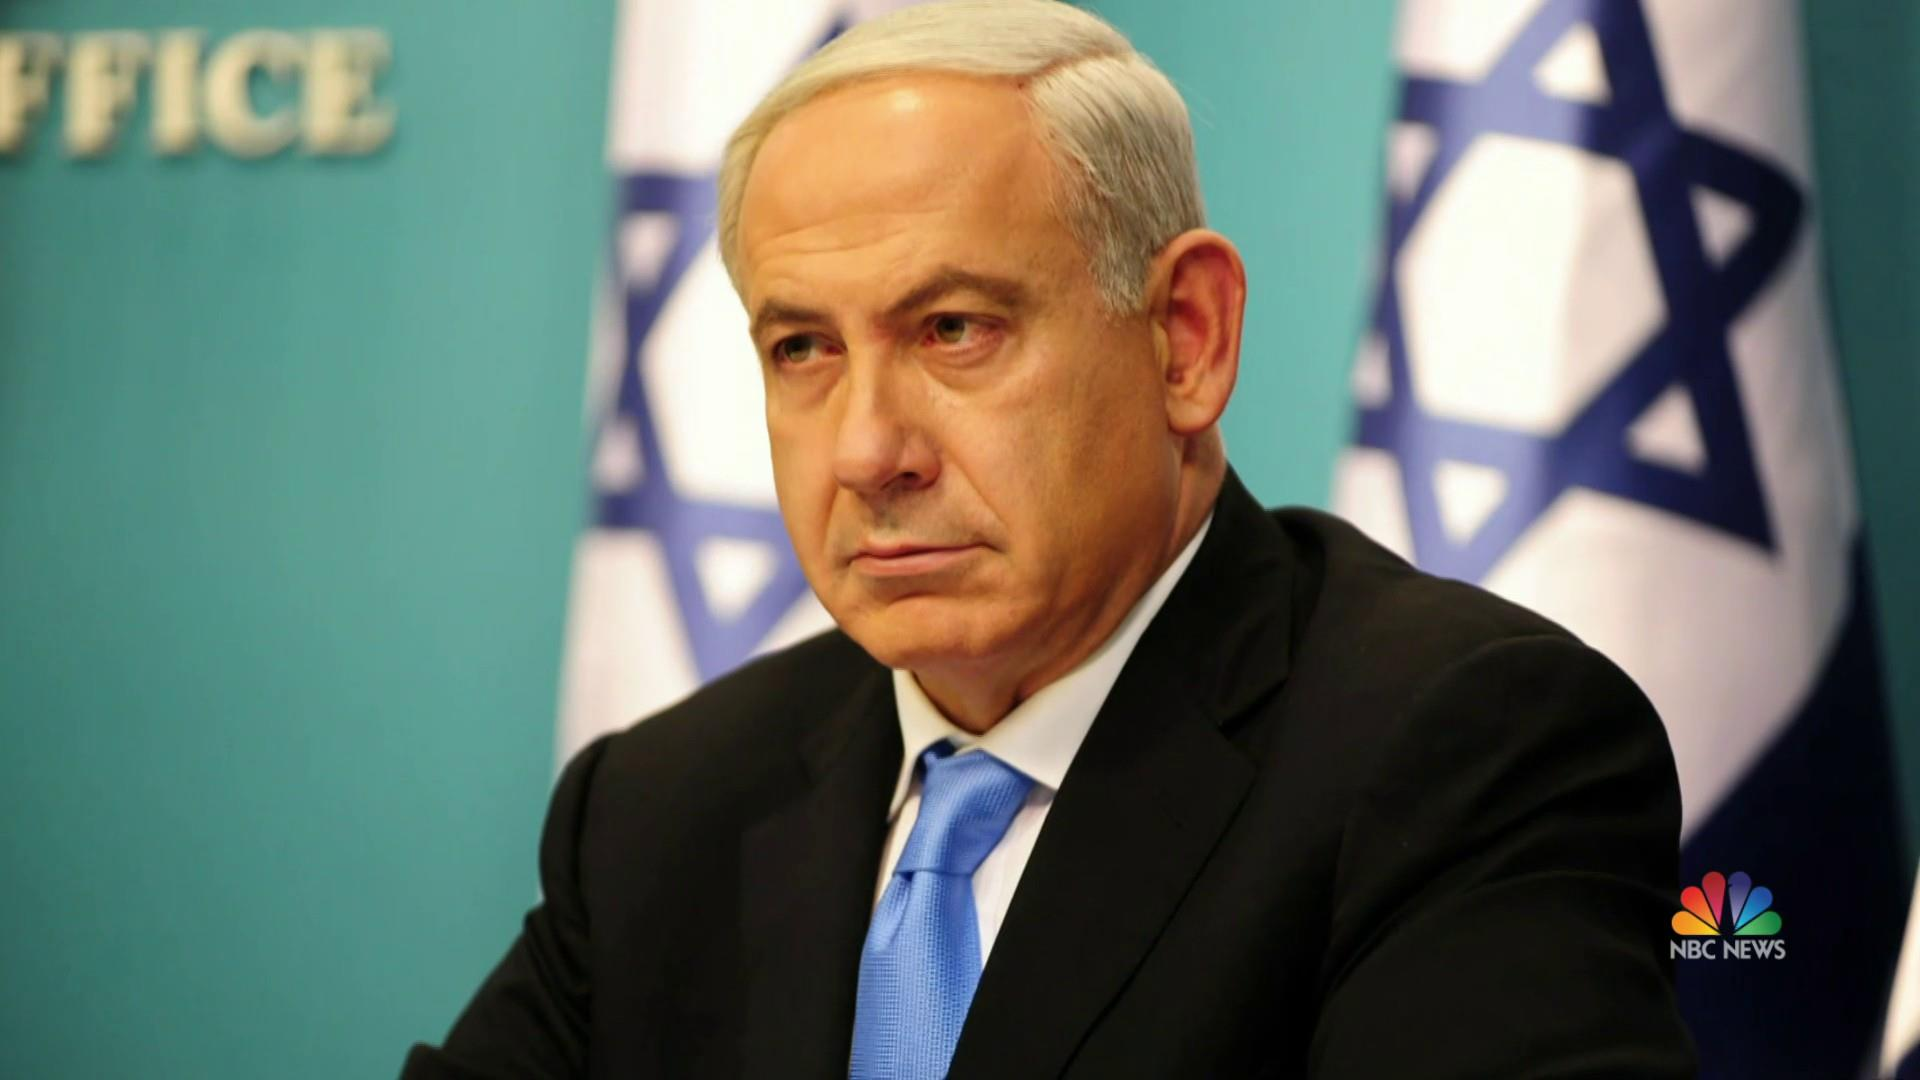 Benjamin Netanyahu indicted on charges of bribery, fraud and breach of trust